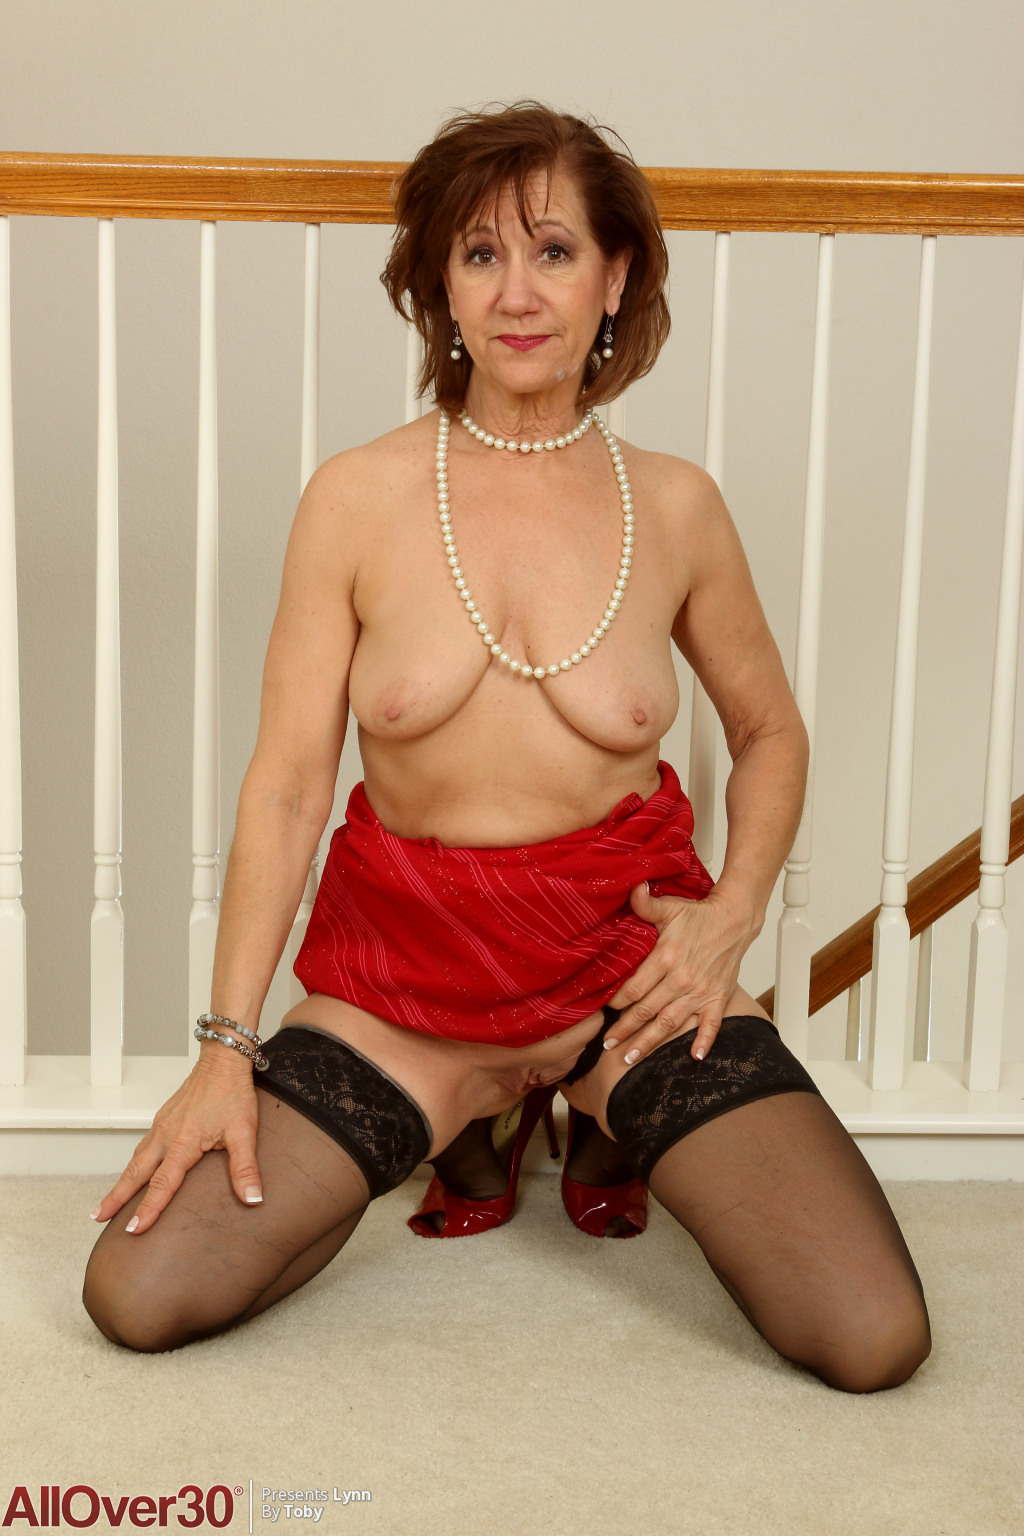 lynn-beautiful-milf-in-stockings-09